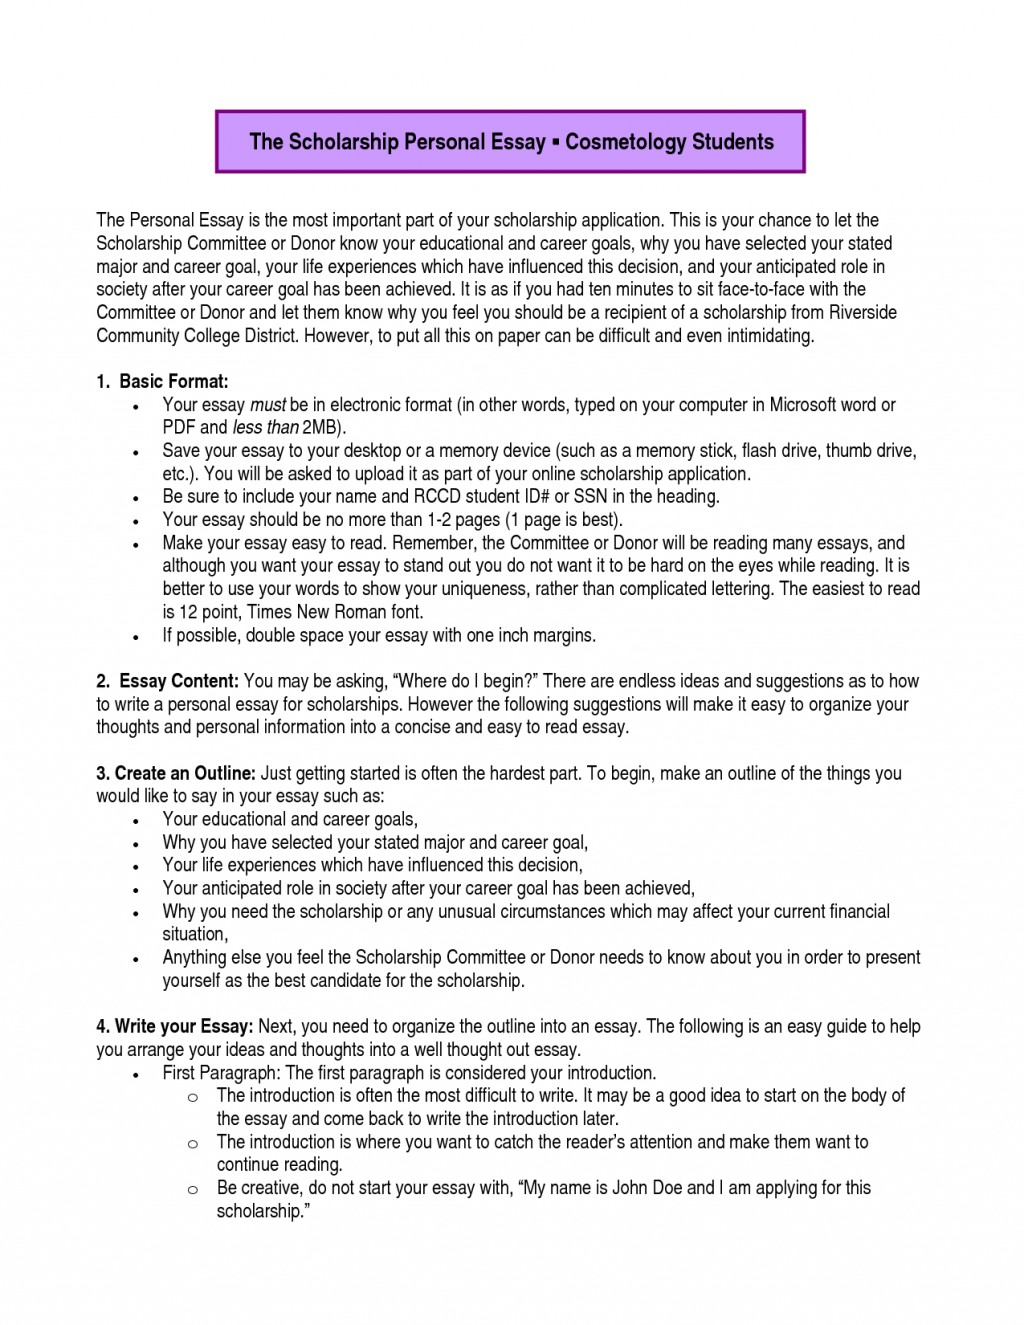 010 Future Career Goals Essay Examples And Educational Journey In Nursing Home Care Objectives Accounting Sample Business As An Cpa Mba Choicelan Welding Development Stirring Pdf Large